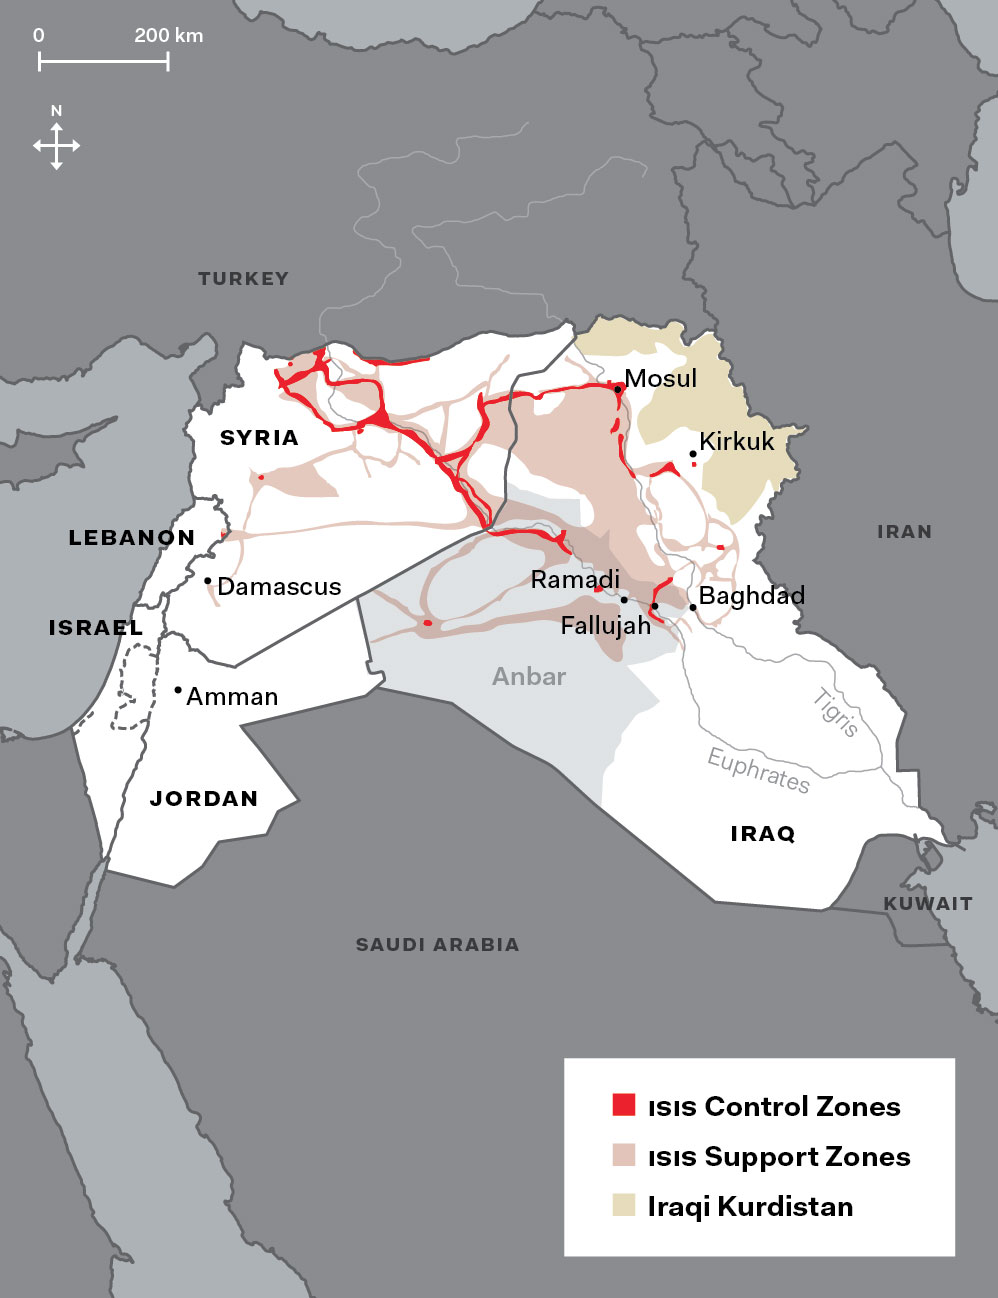 Map by Meredith Holigroski/data from the Institute for the Study of War (April 2015)